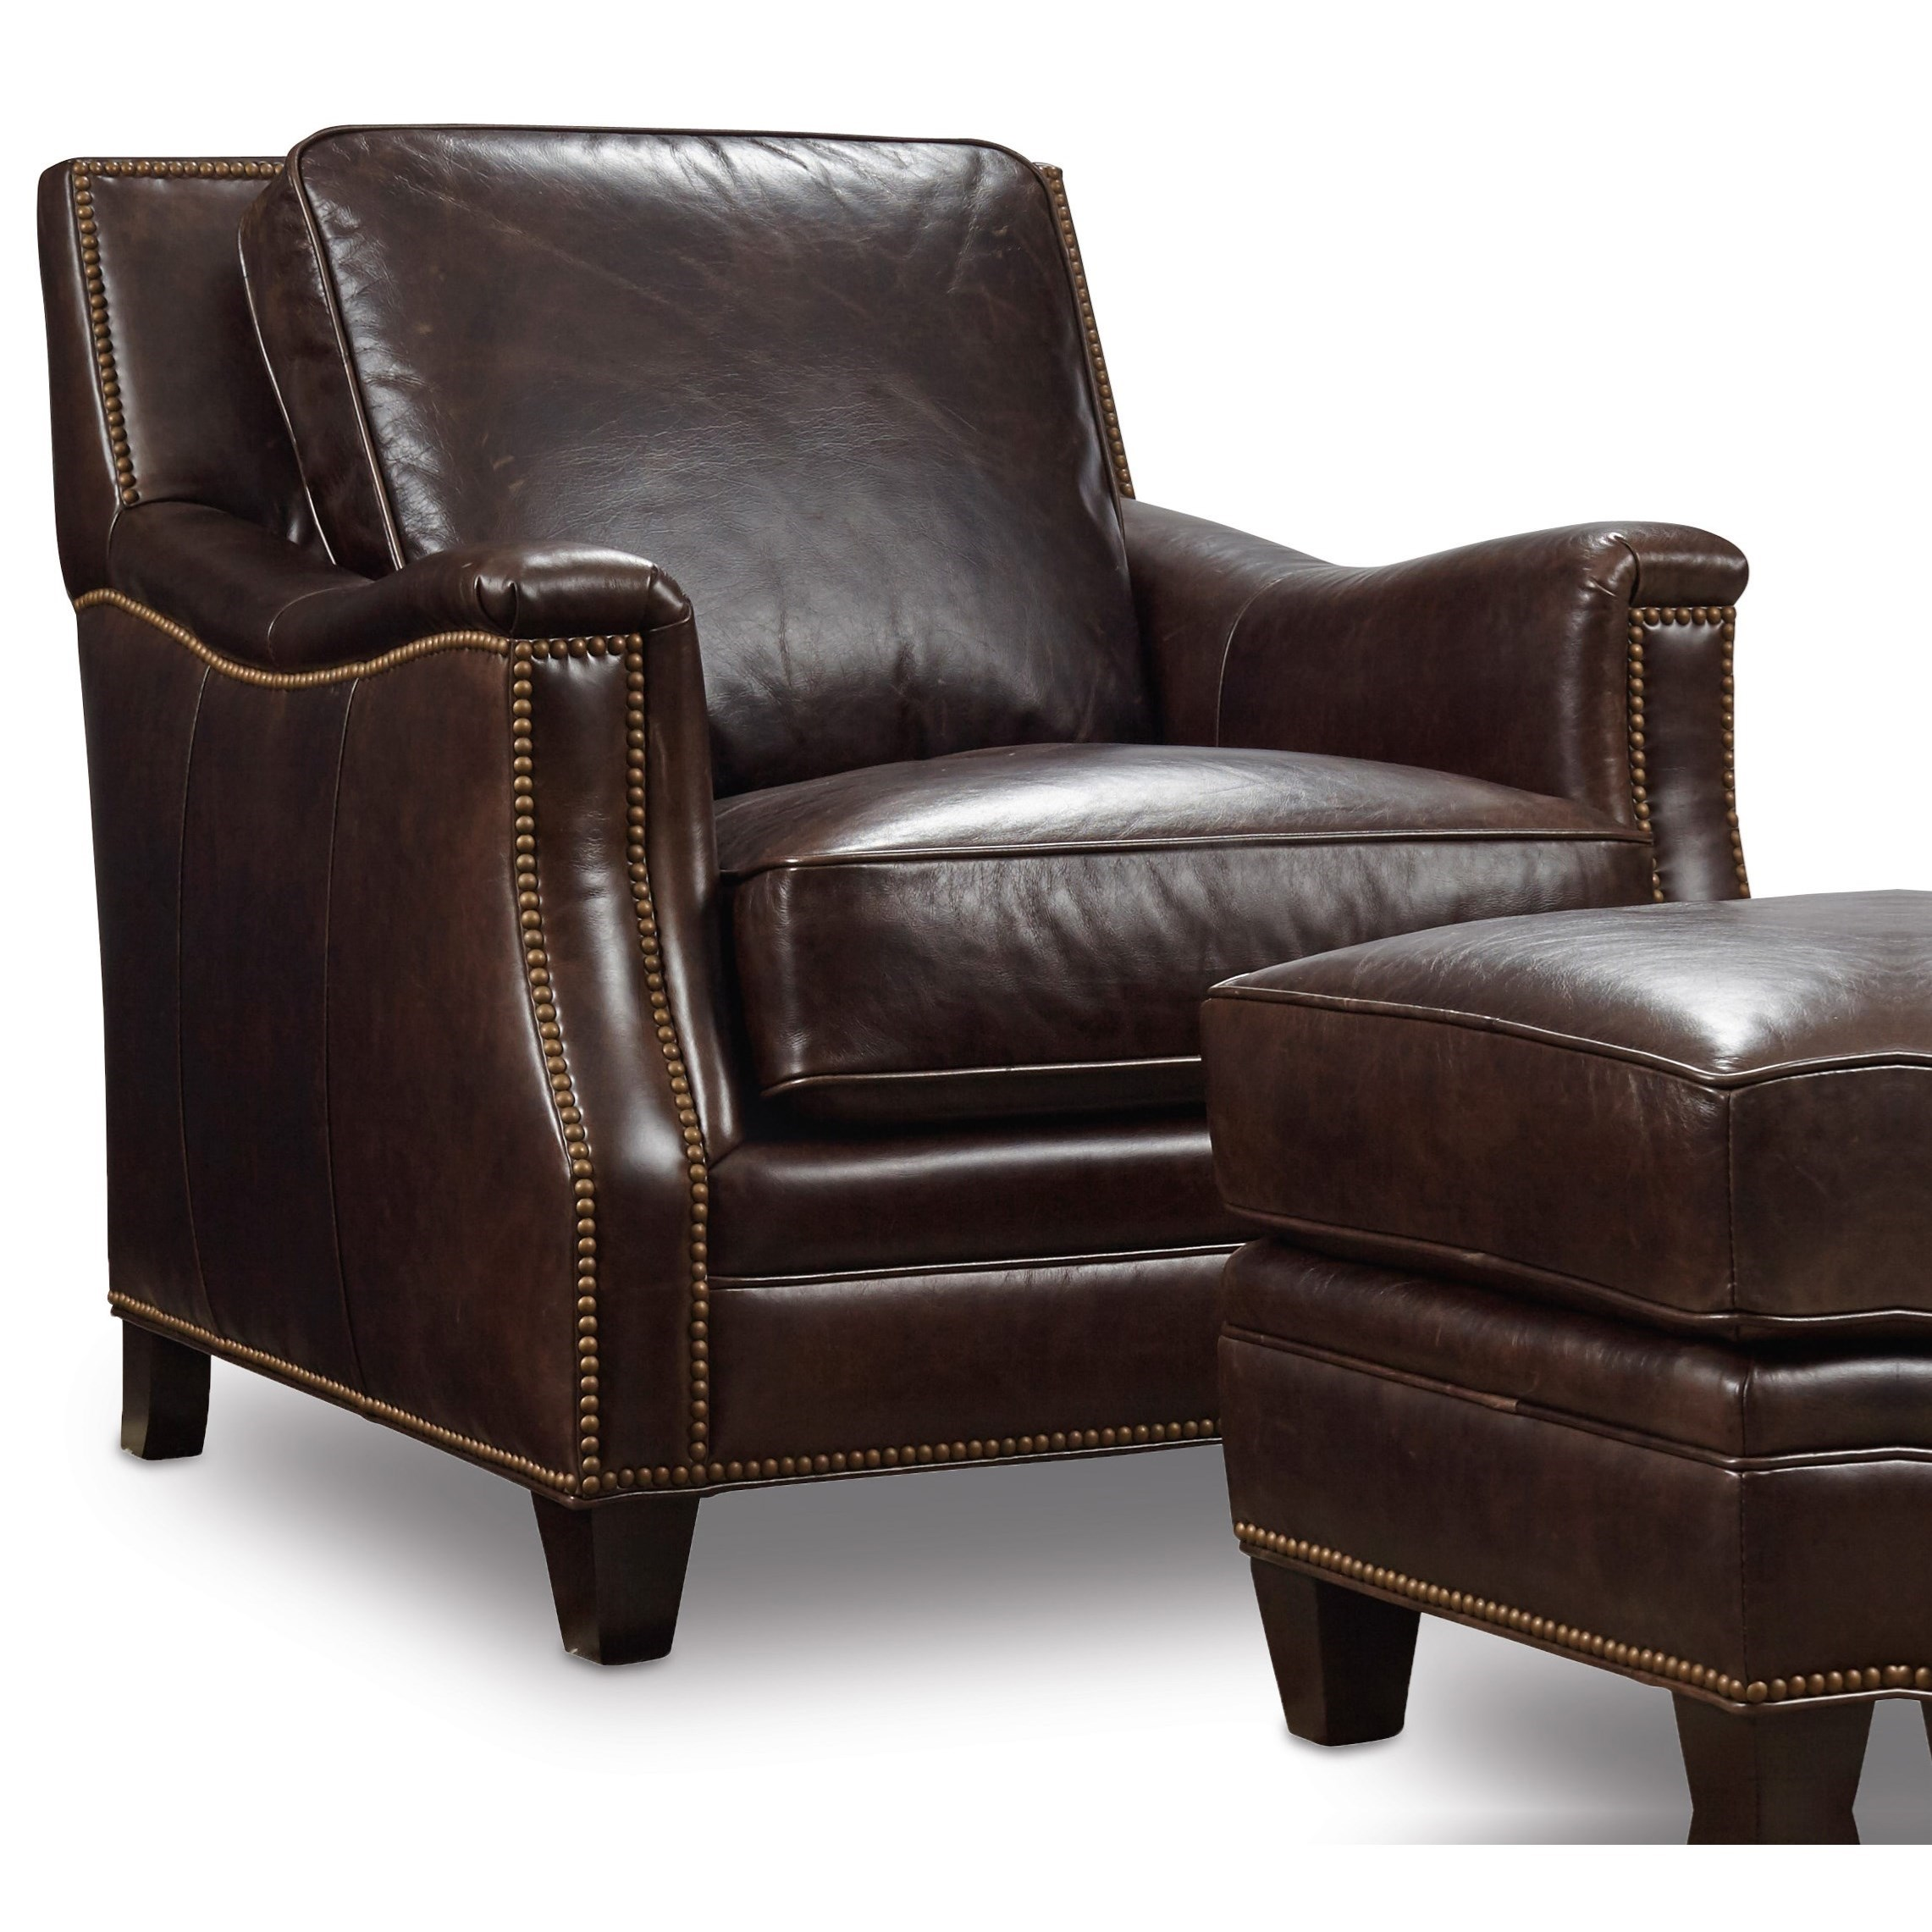 Hooker Furniture Bradshaw Stationary Leather Chair - Item Number: SS351-01-088